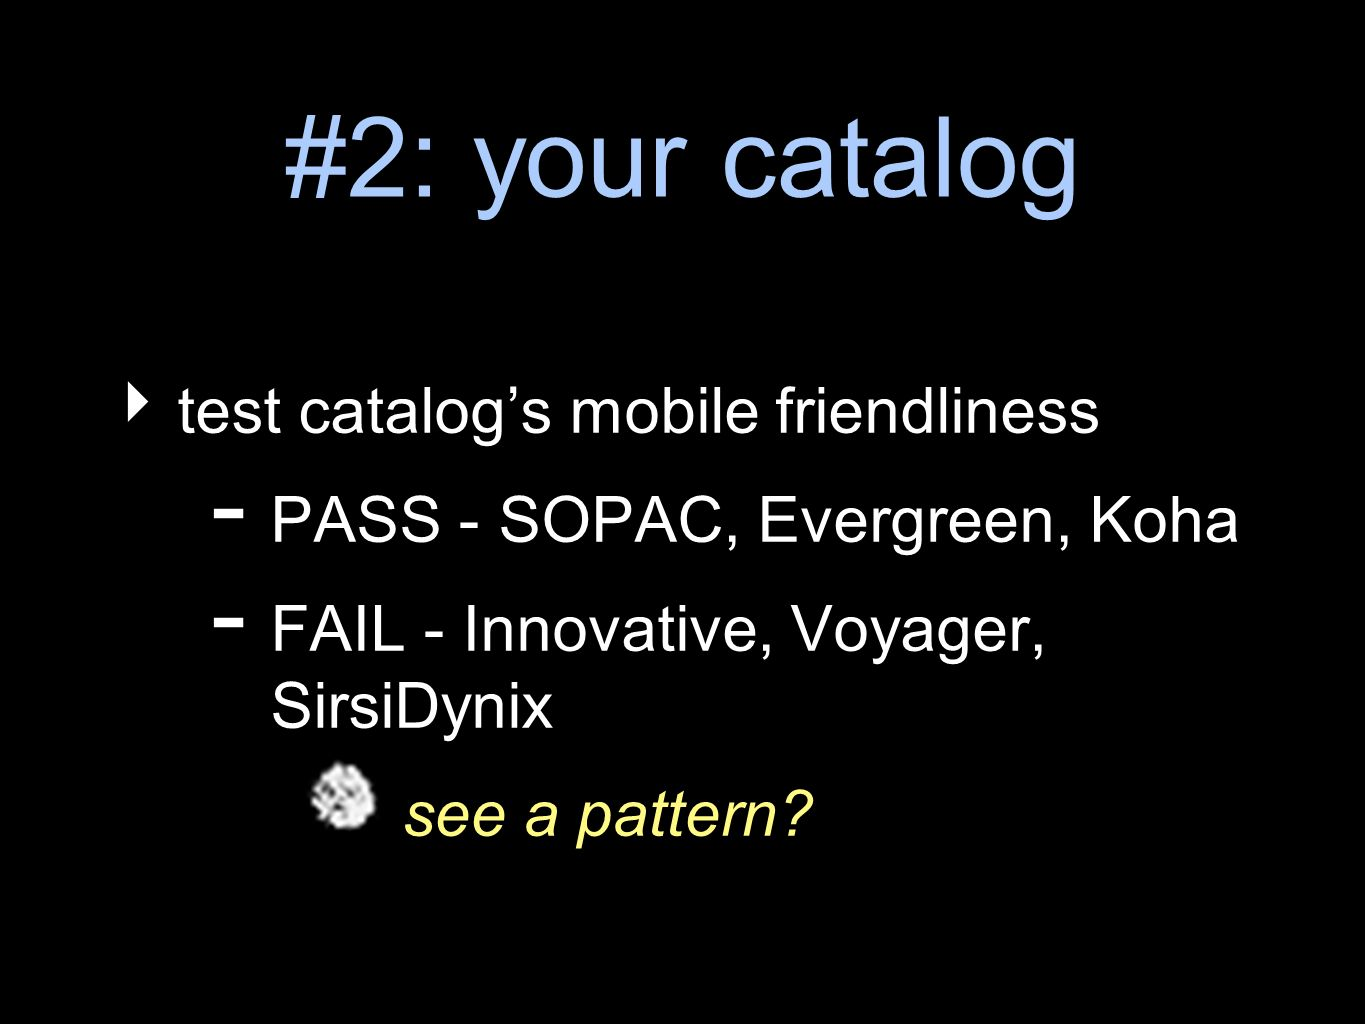 #2: your catalog test catalogs mobile friendliness - PASS - SOPAC, Evergreen, Koha - FAIL - Innovative, Voyager, SirsiDynix see a pattern